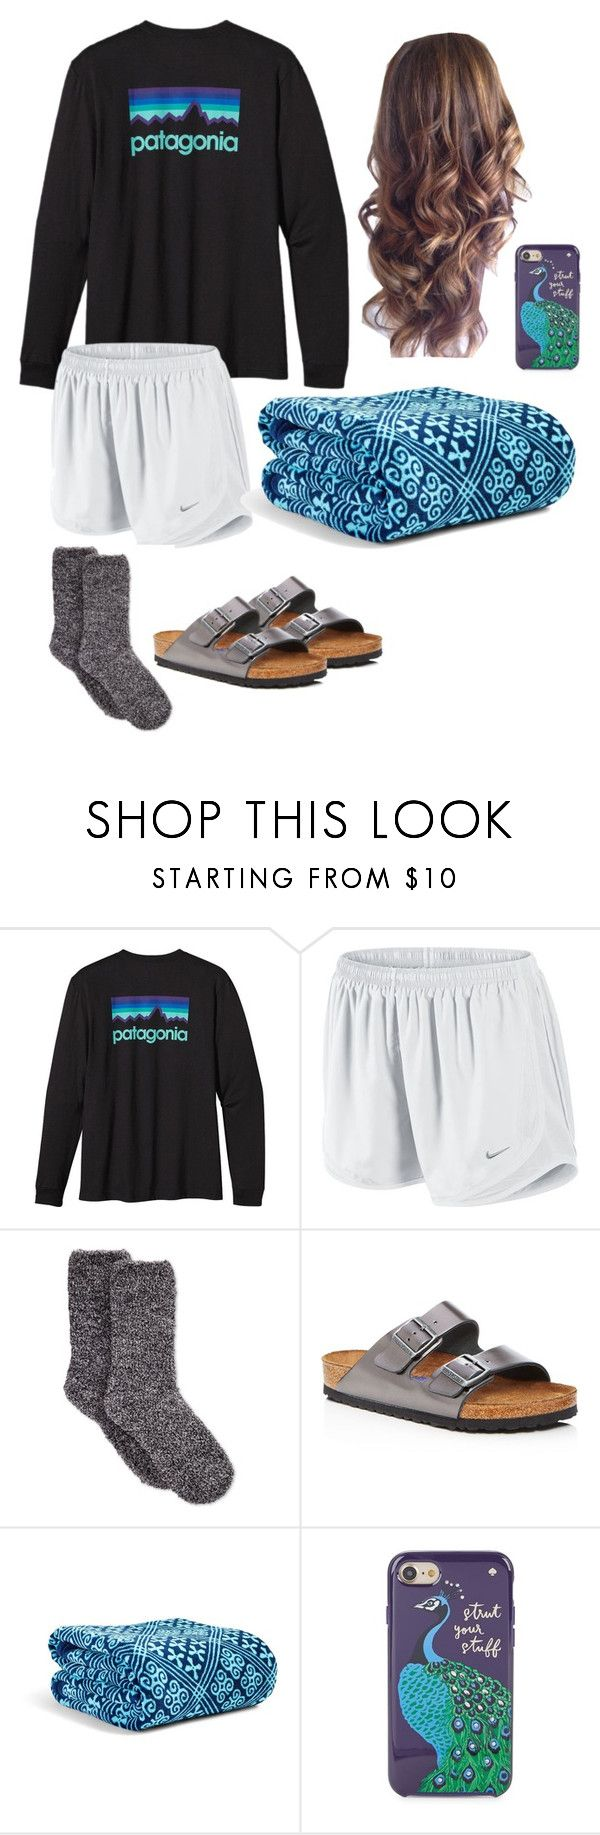 """""""Summer Stay Awake"""" by mirandamf on Polyvore featuring Patagonia, NIKE, Charter Club, Birkenstock, Vera Bradley and Kate Spade"""